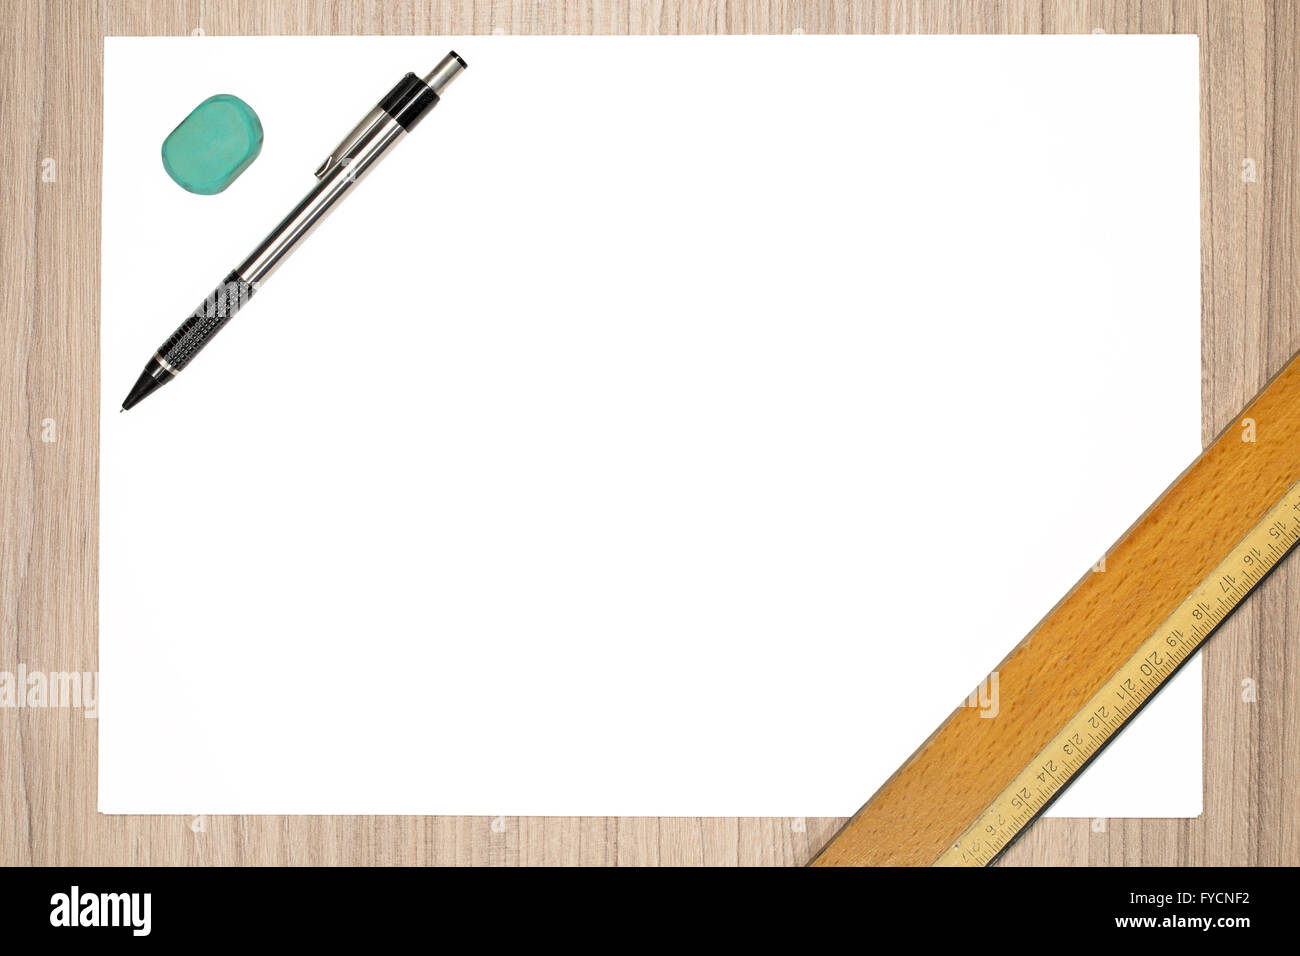 Blank paper with pencil, ruler and rubber on wood desk - Stock Image